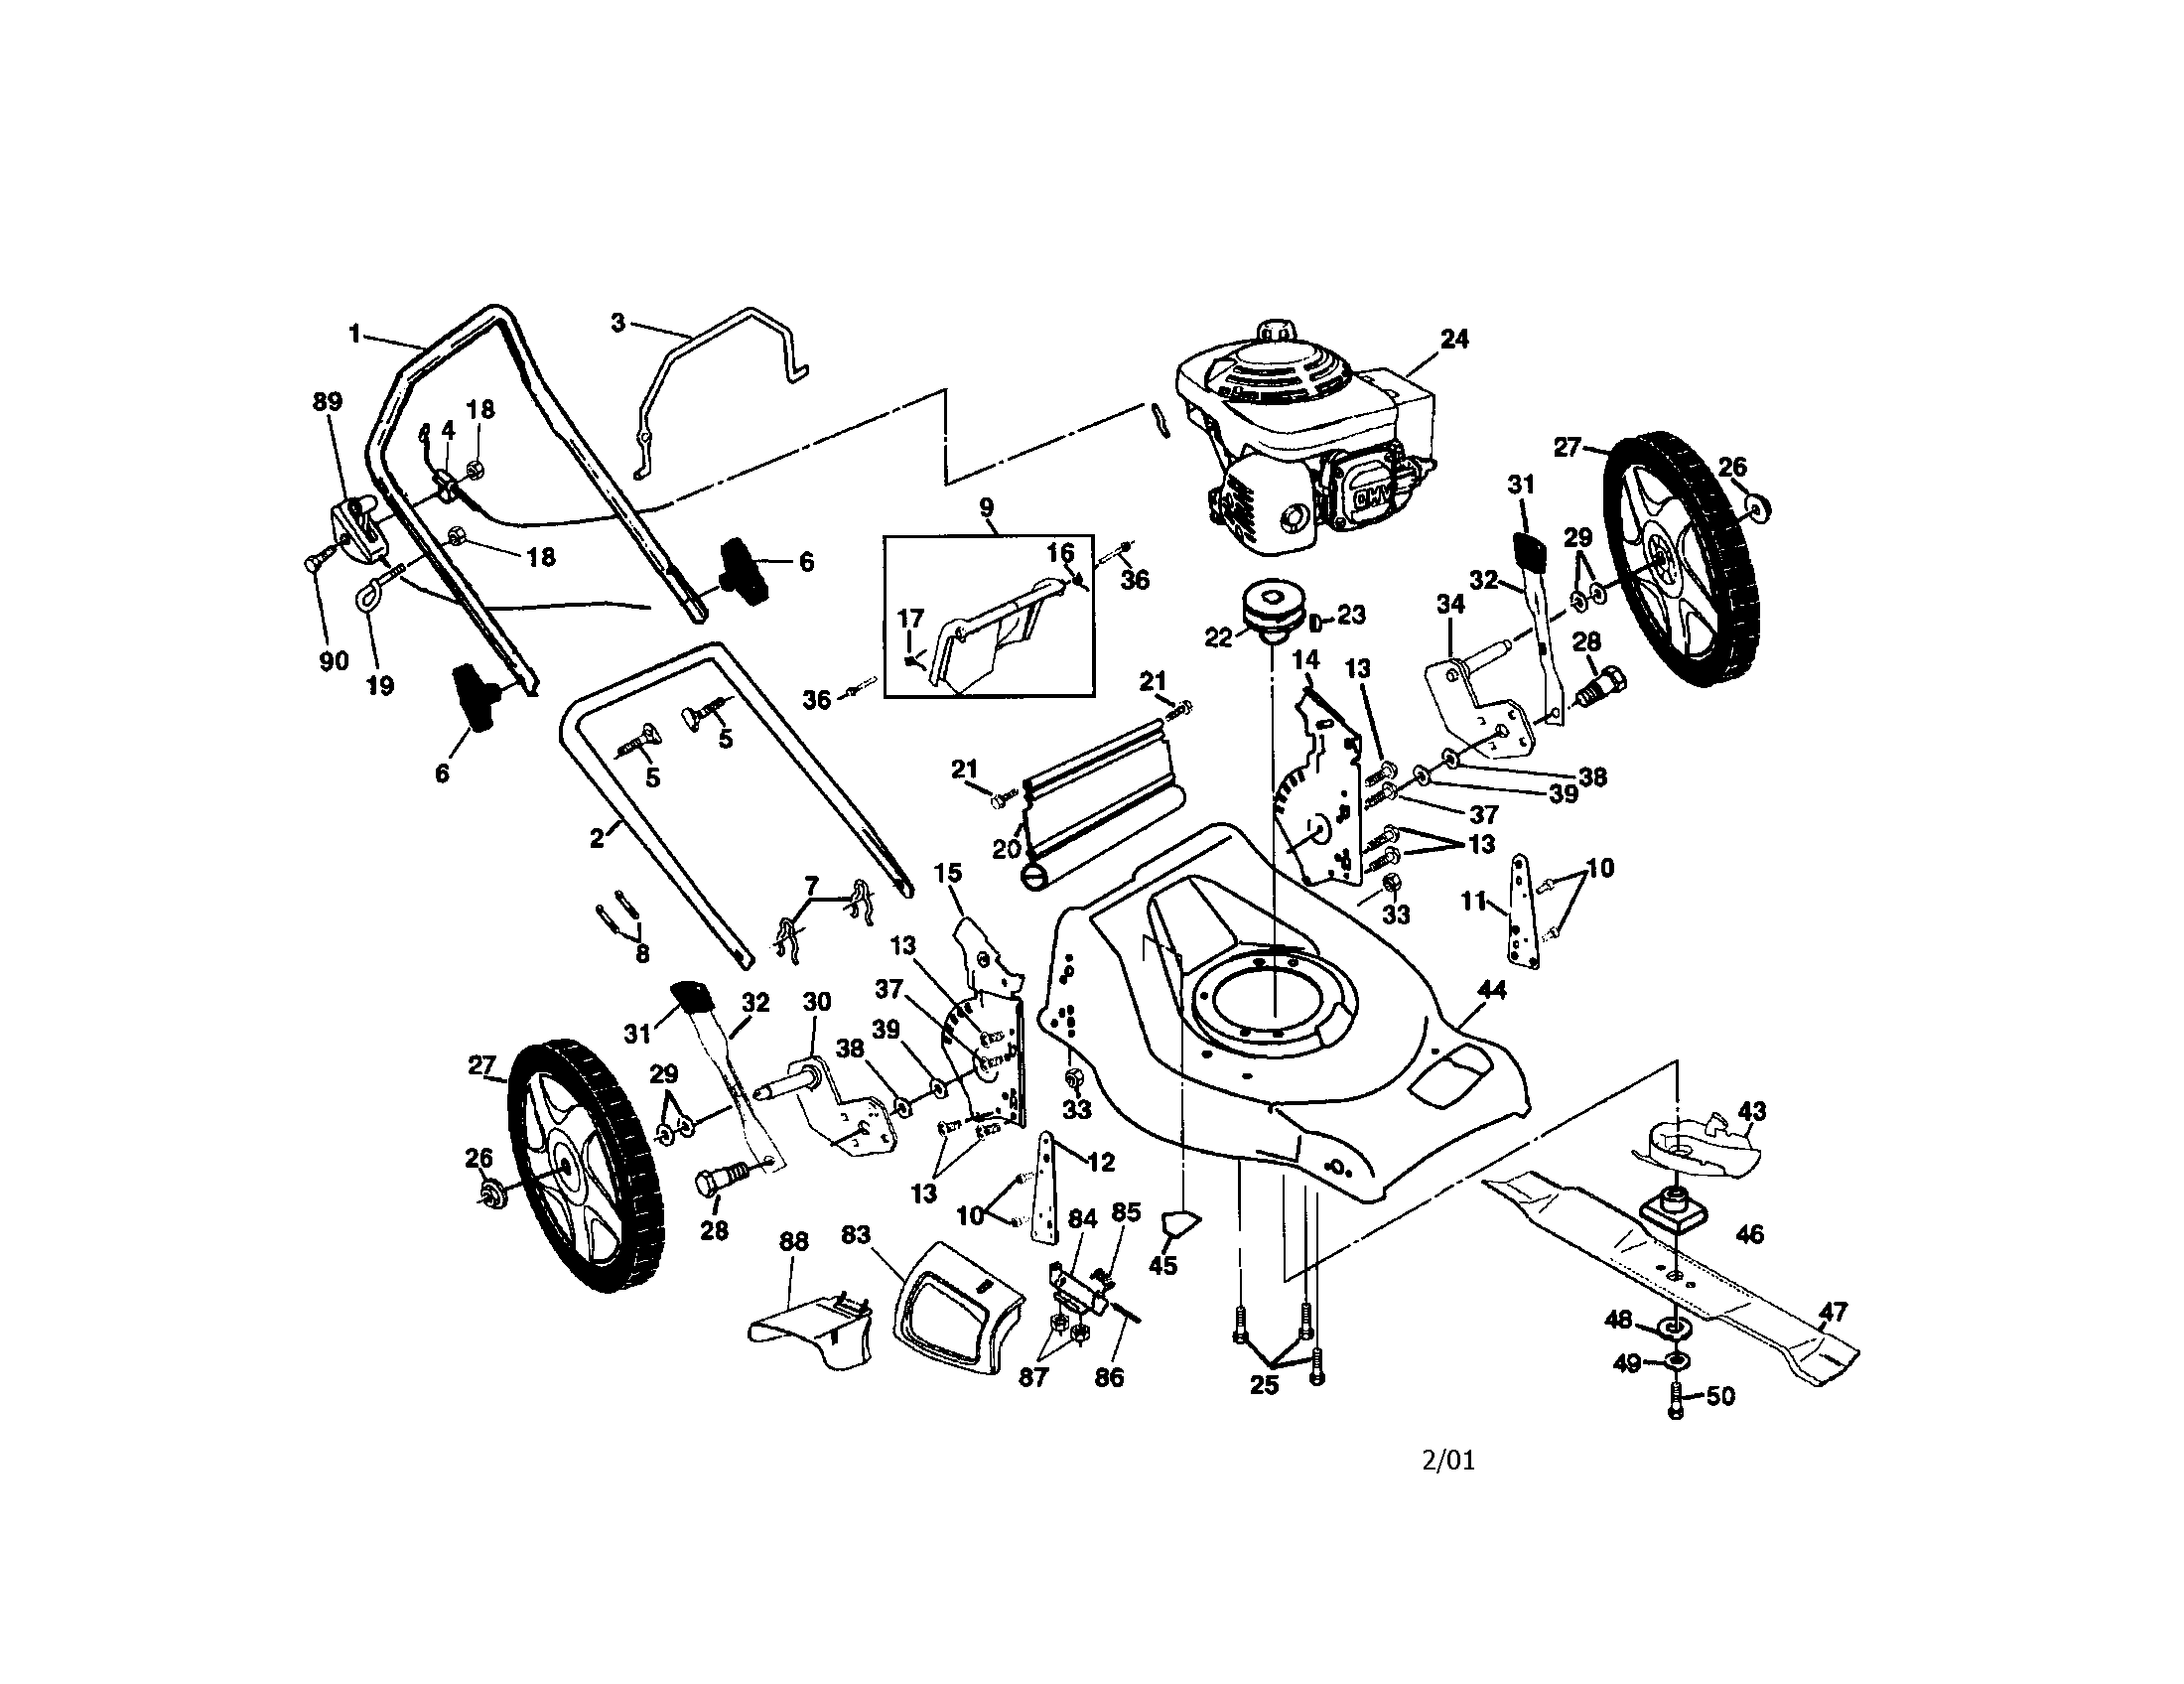 Engine wiring ignition switch wiring diagram honda diagrams poulan rotary mower parts model pr55hy21ca sears partsdirect